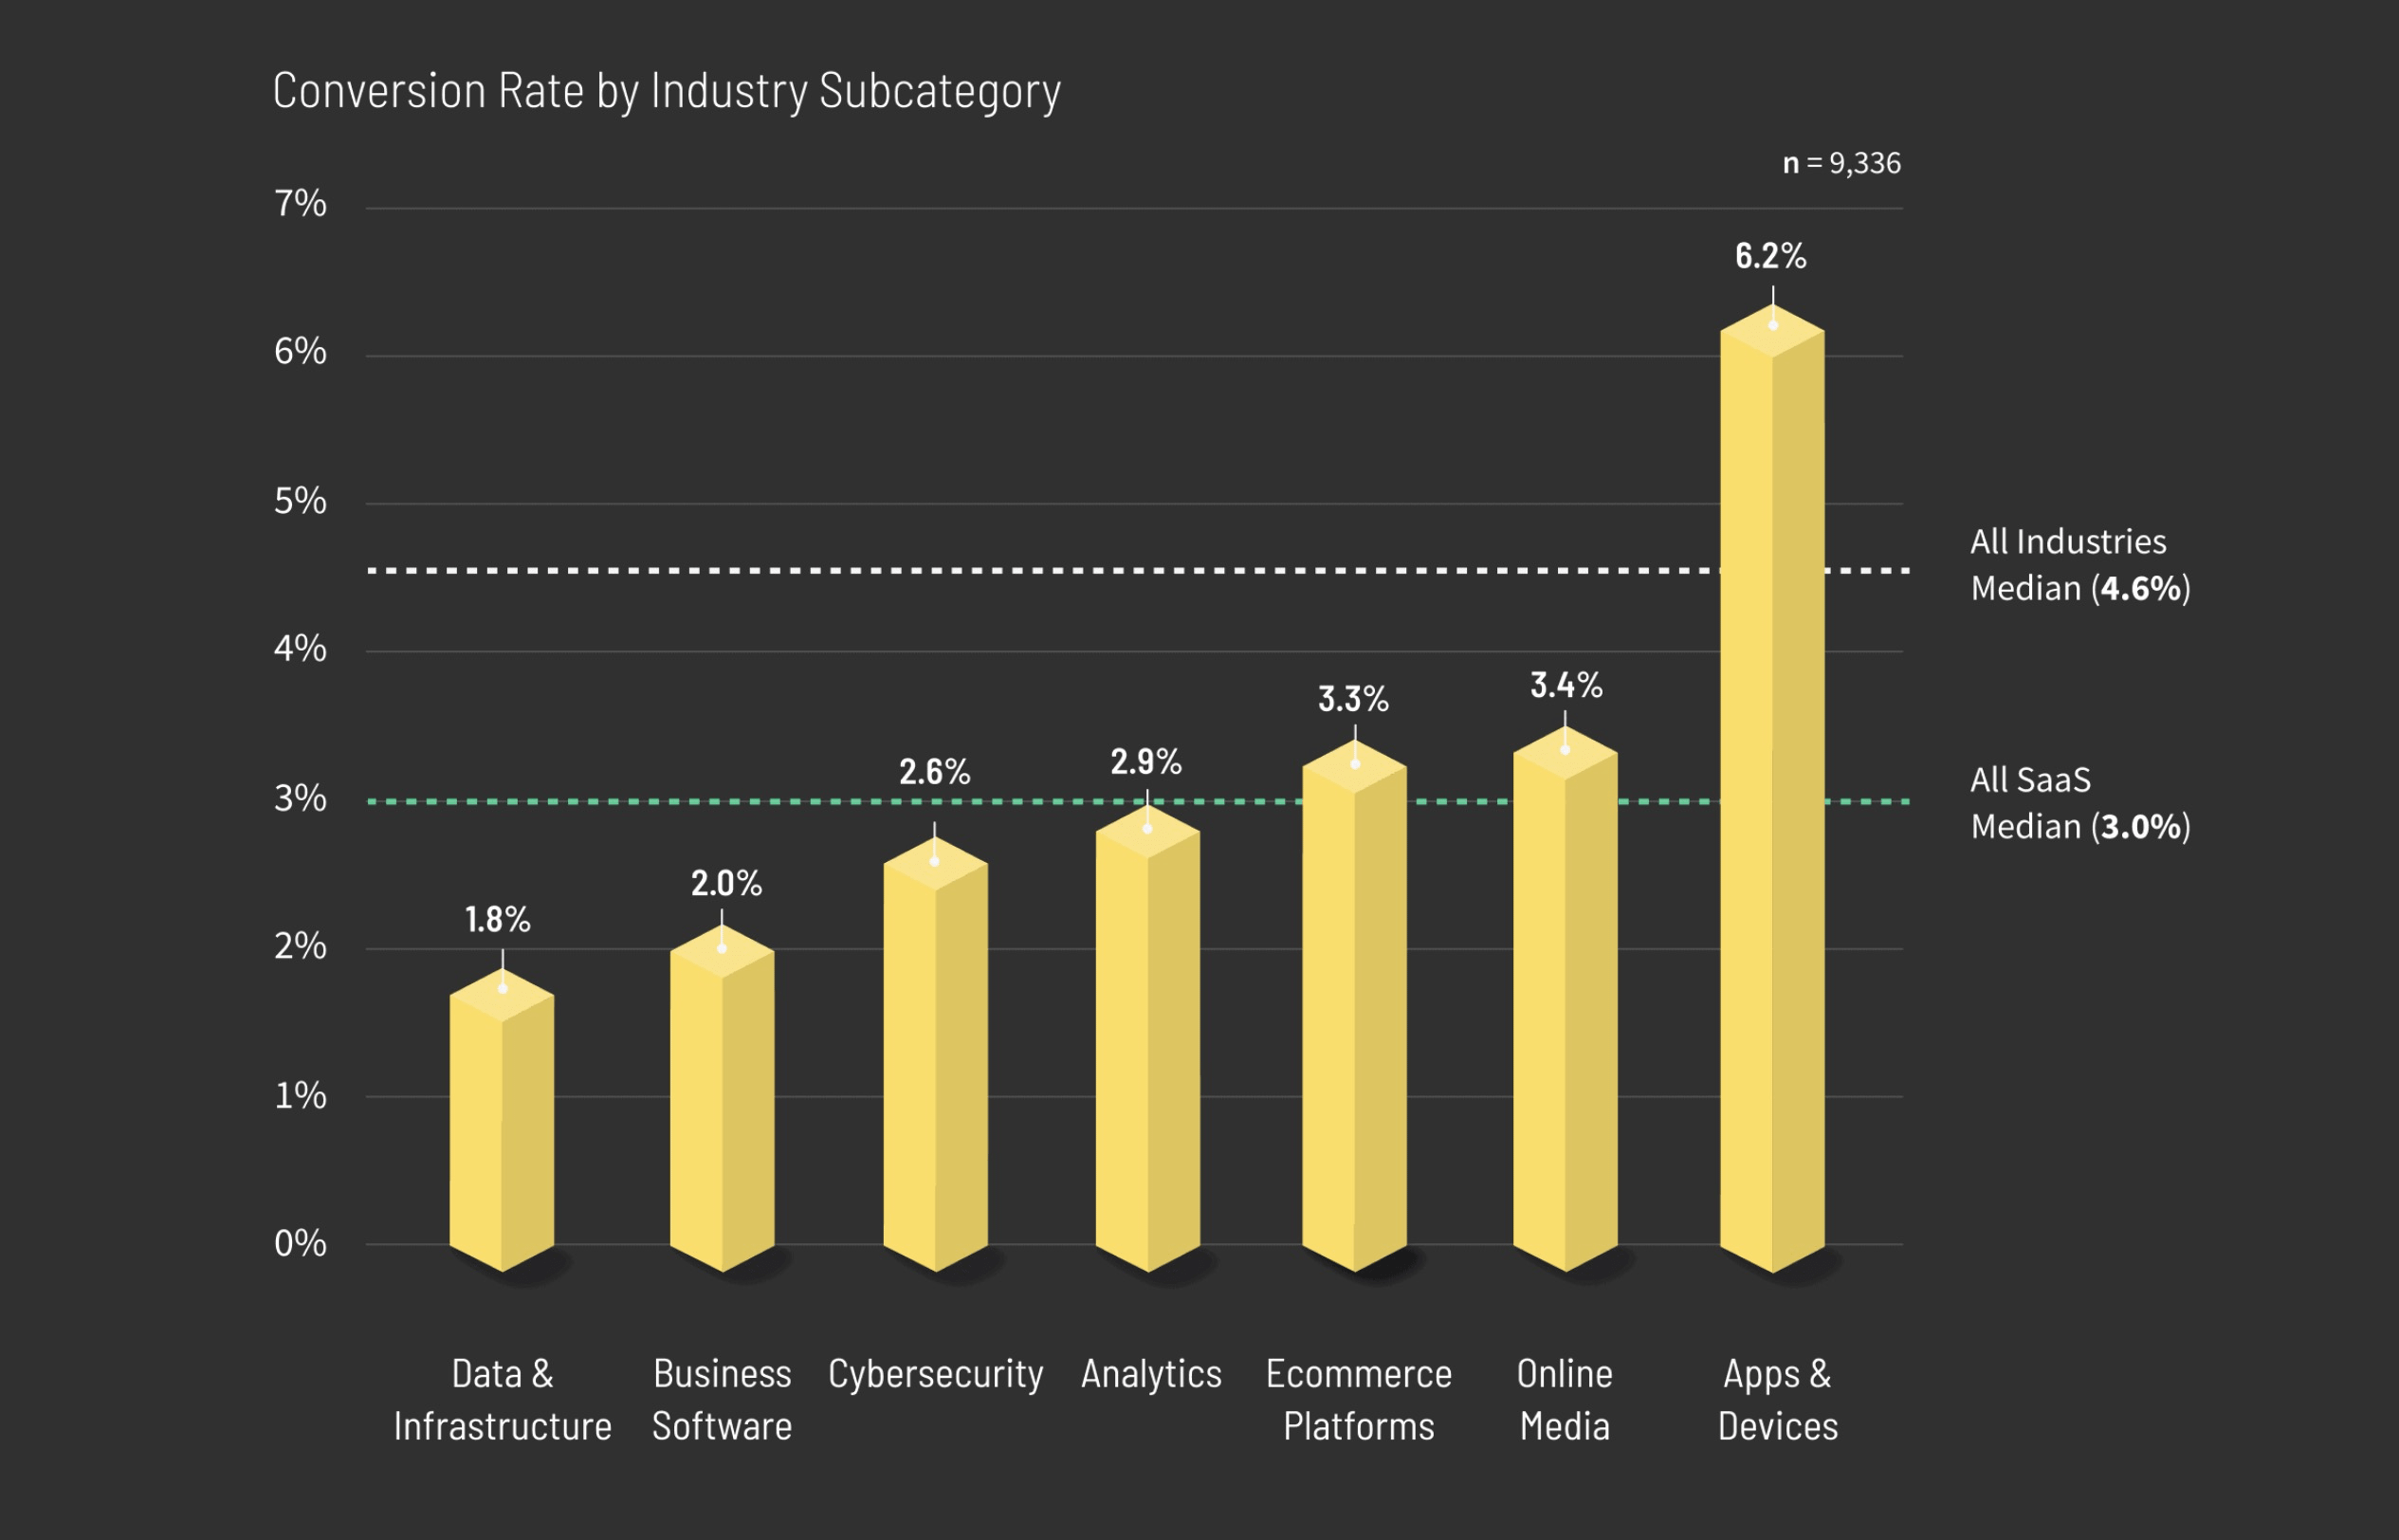 Conversion rate by industry subcategory. Median conversion rate of all industries is 4.6% and 3.0% for SaaS